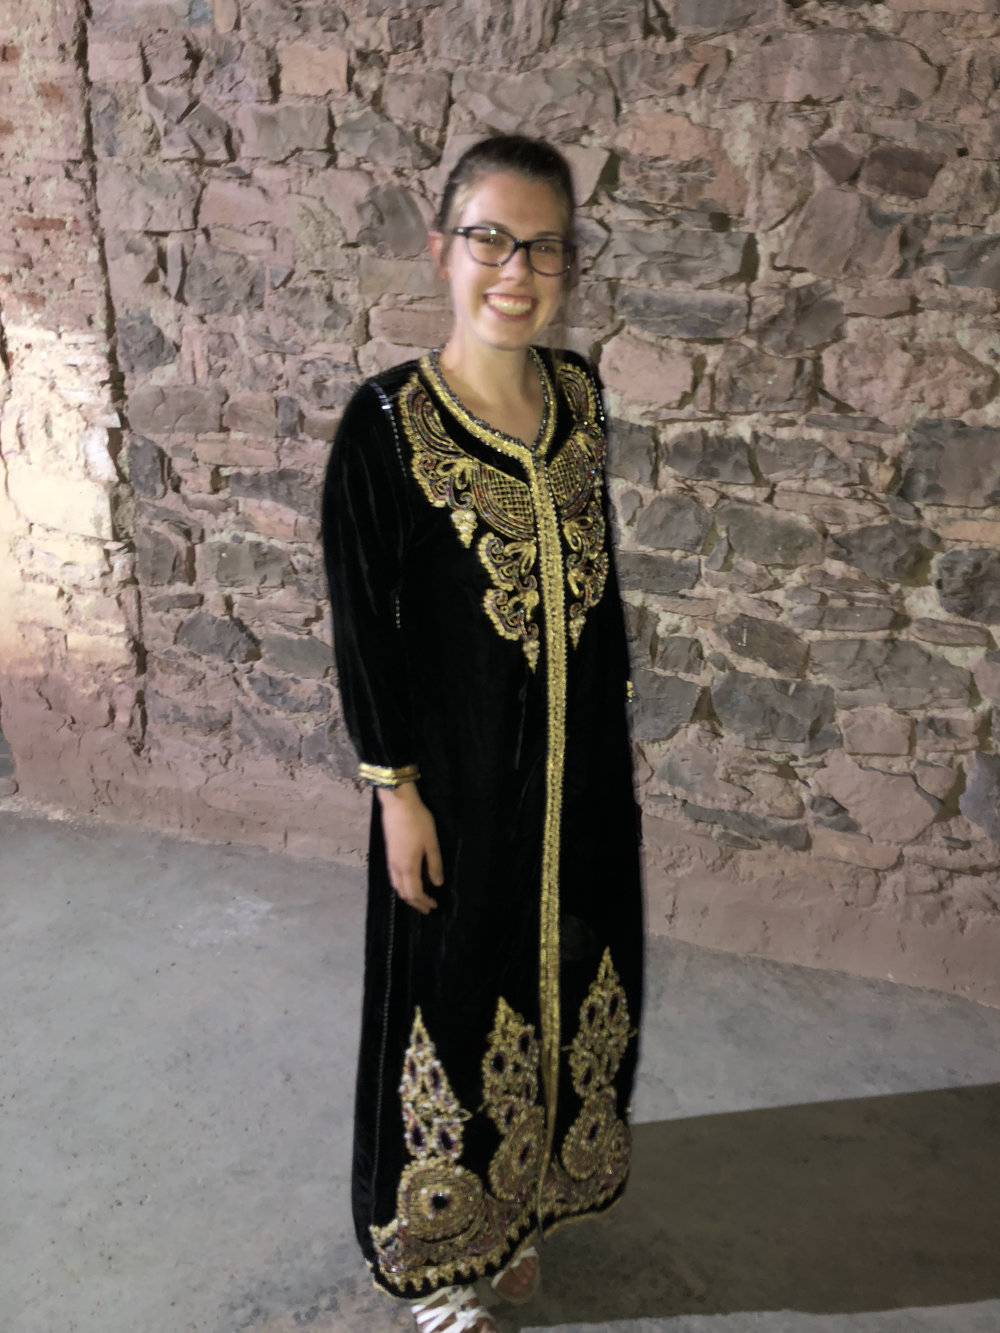 I had the privilege of wearing a traditional djellaba provided by the Sheikh's family for dancing and festivities on our final night in the community. Photo Credit: G. Szabo, Fall 2018